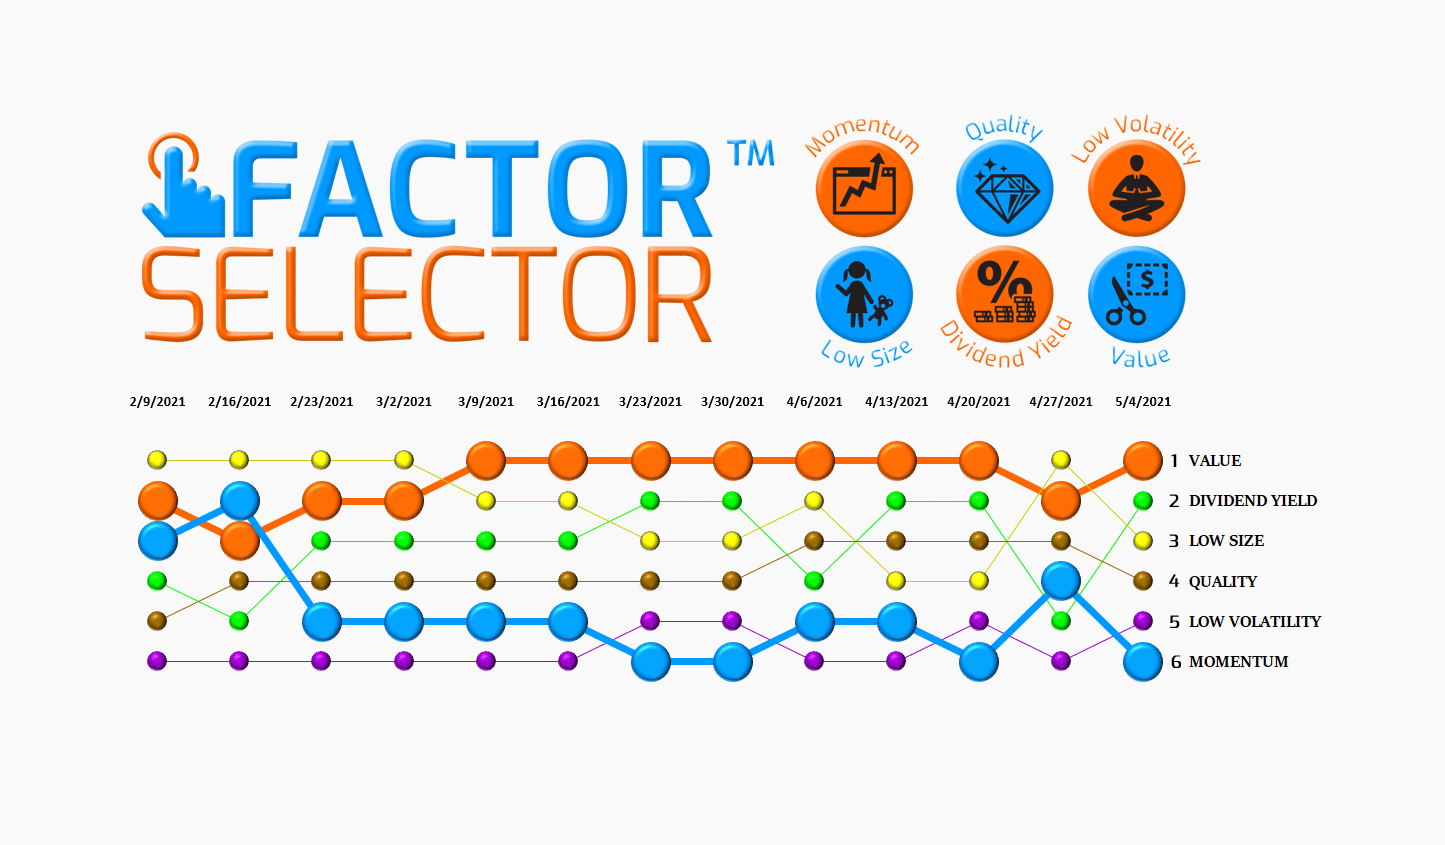 Factor Selector™  – 05/05/21 via @https://www.pinterest.com/market_scholars